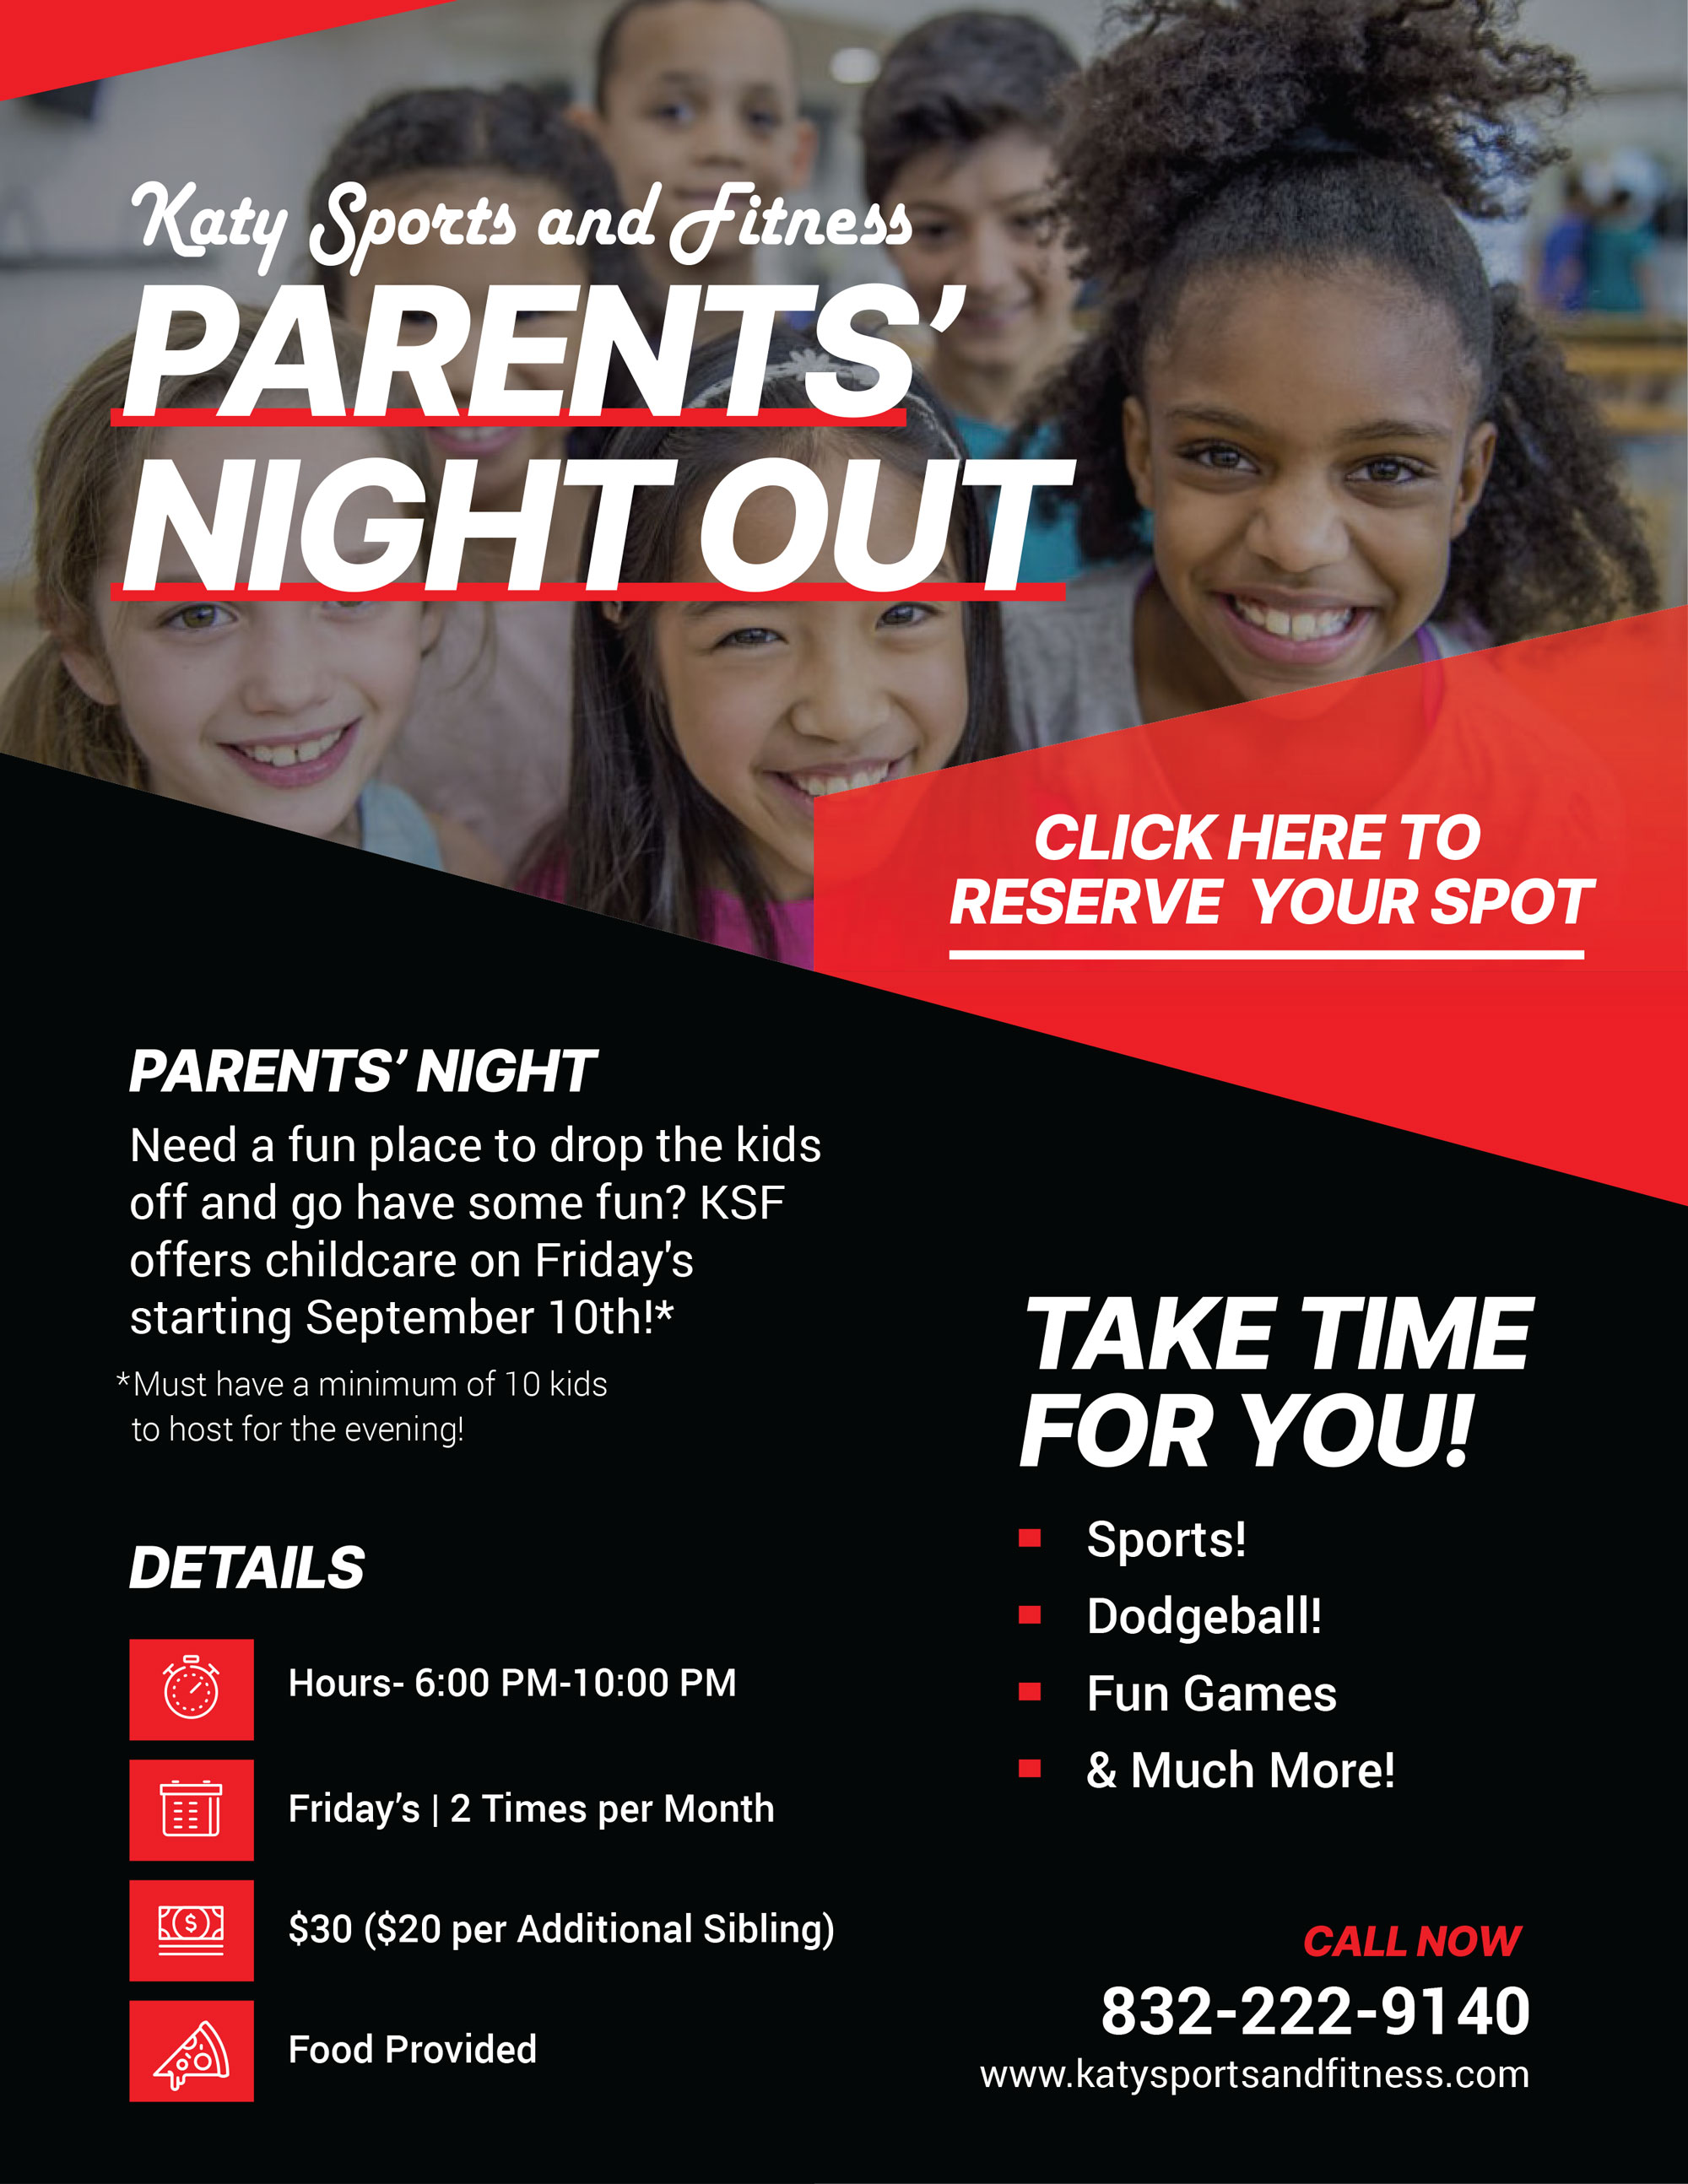 KSF_Parents_Night_Out